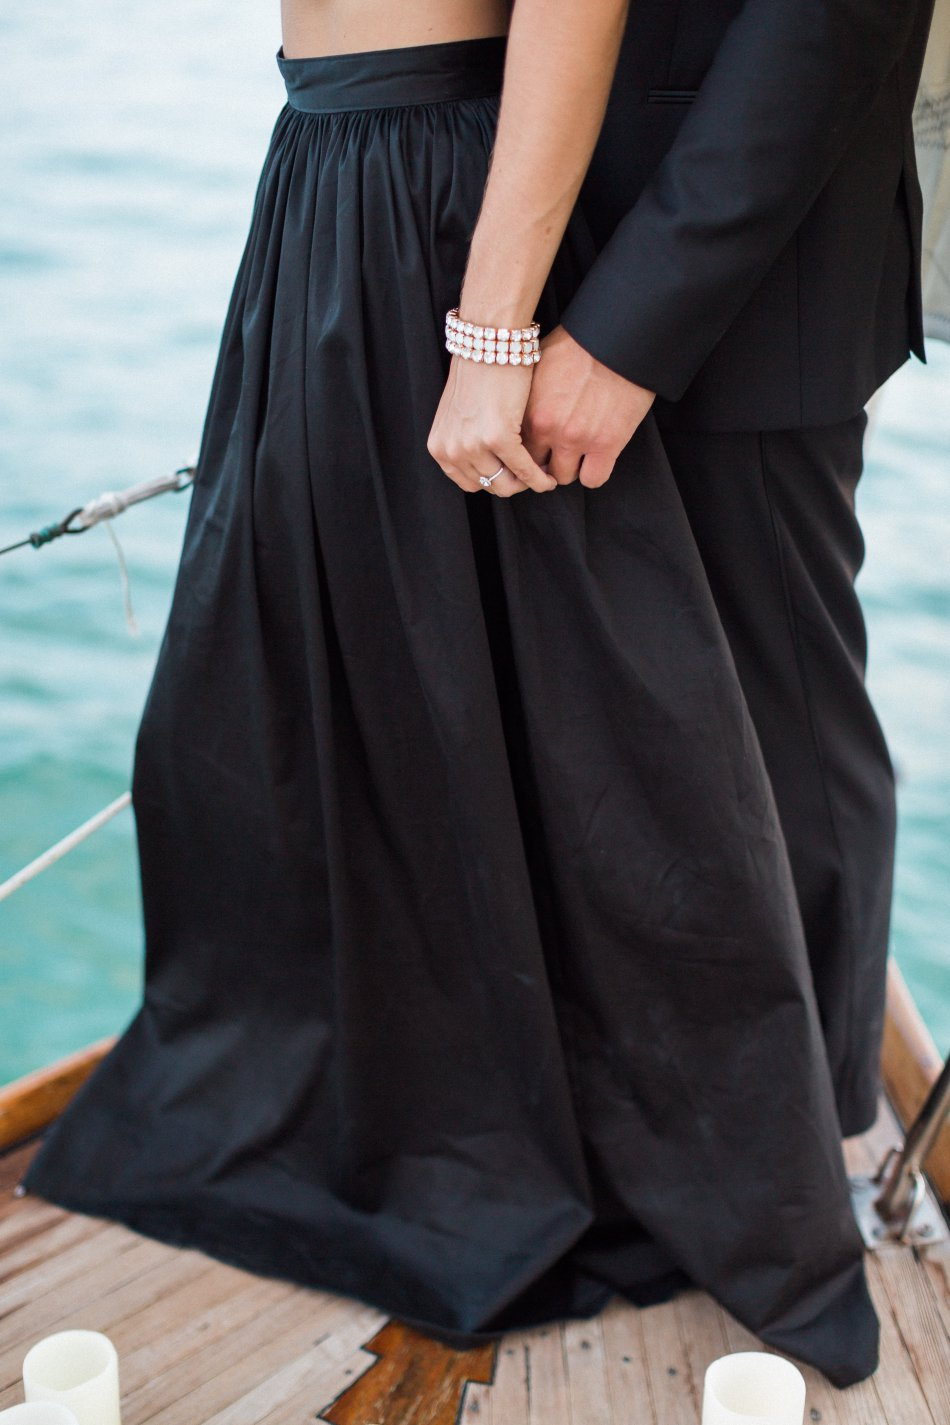 naples-luxury-sailing-engagement-photography-nautical-sailboat-engagement_1094.jpg